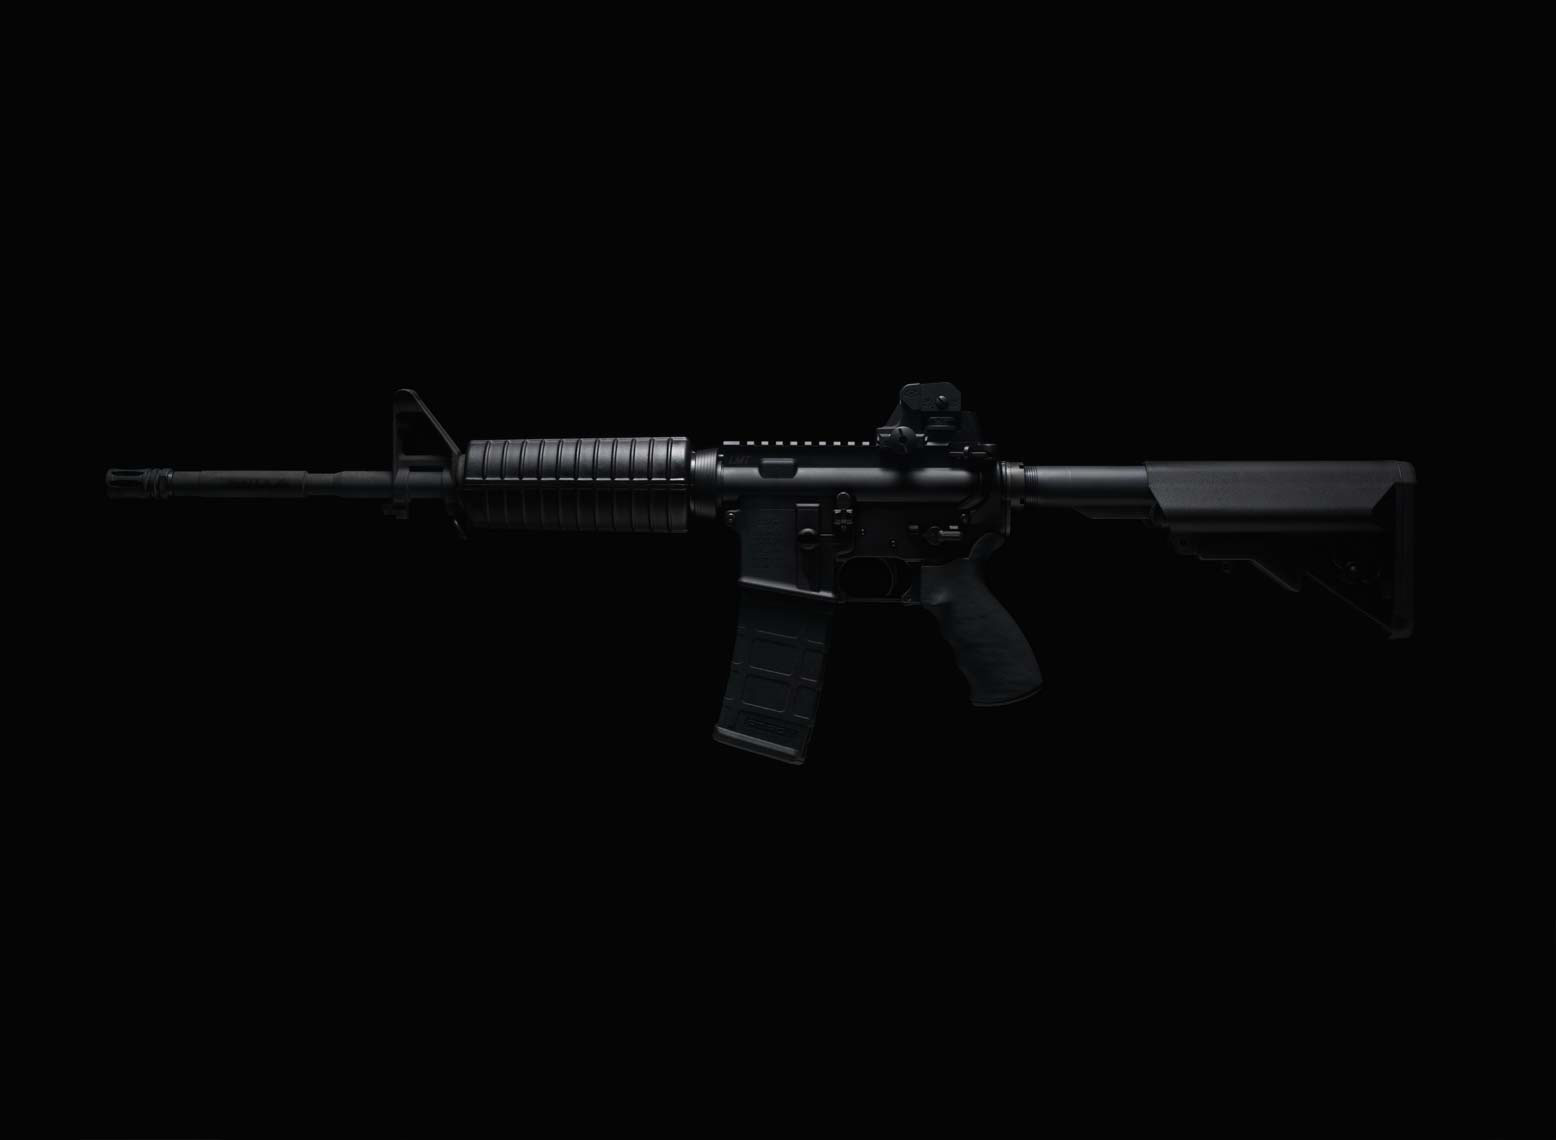 dark photo of an AR-15 rifle